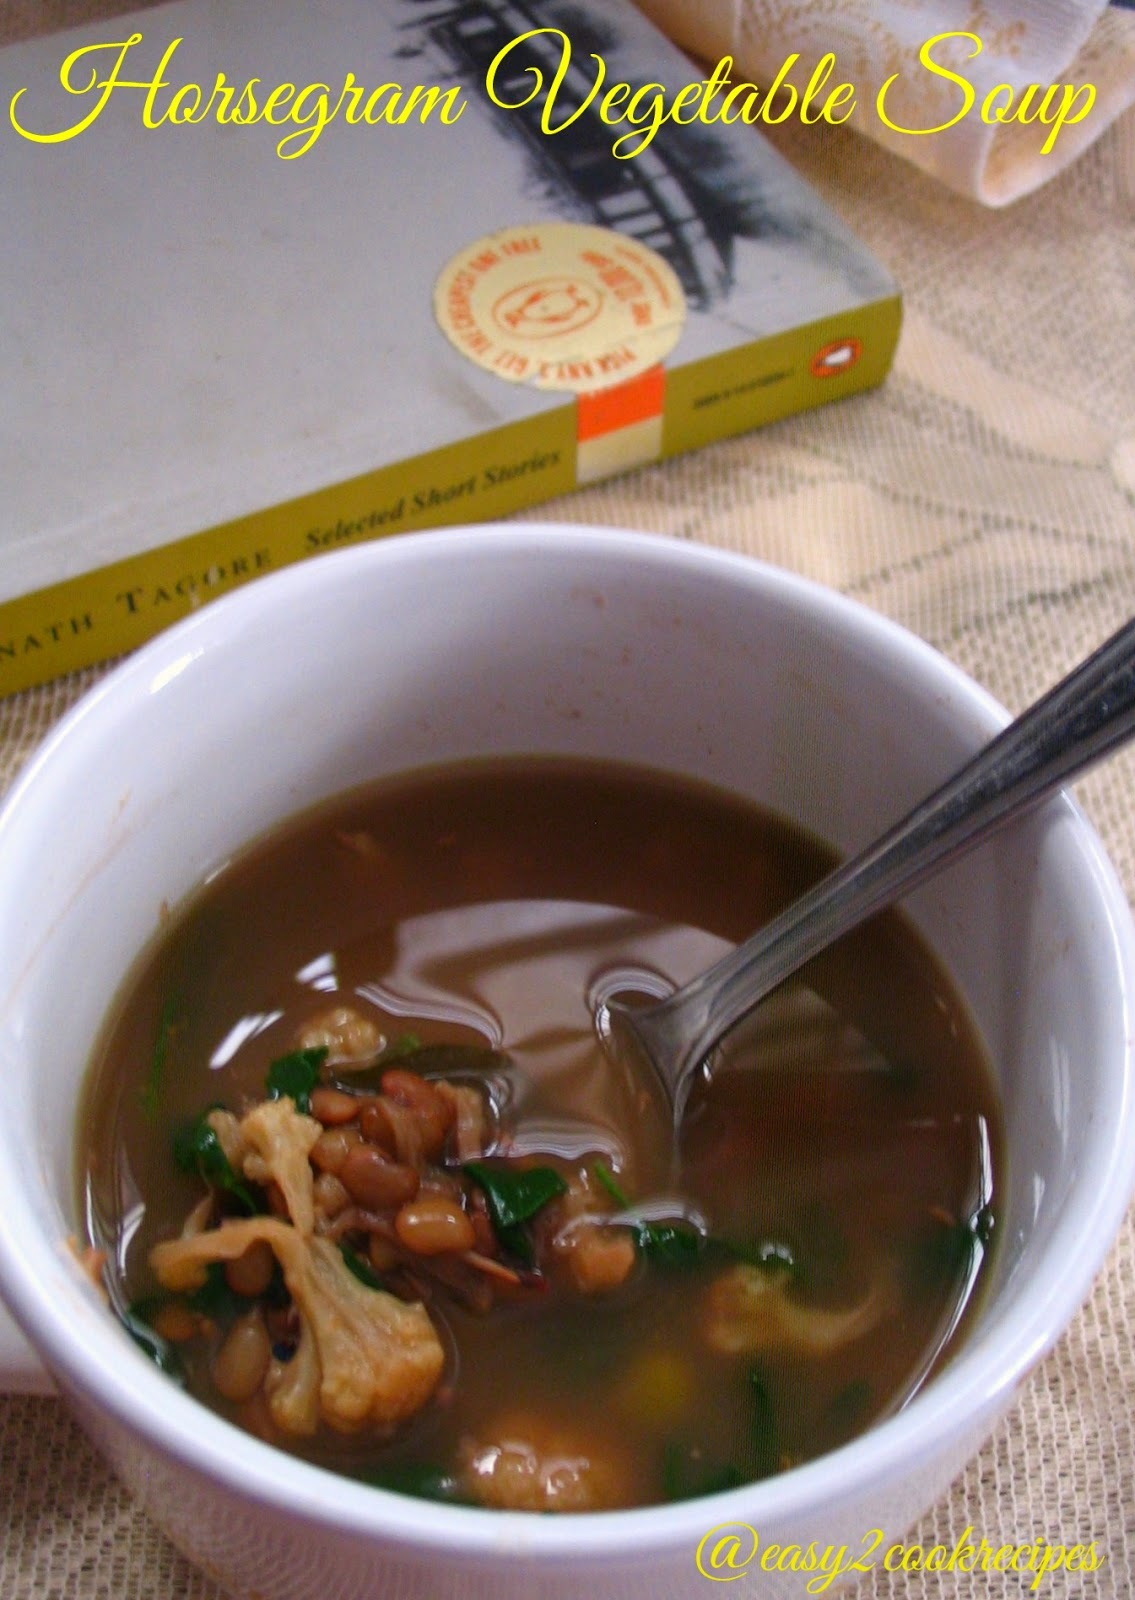 HORSEGRAM VEGETABLE SOUP